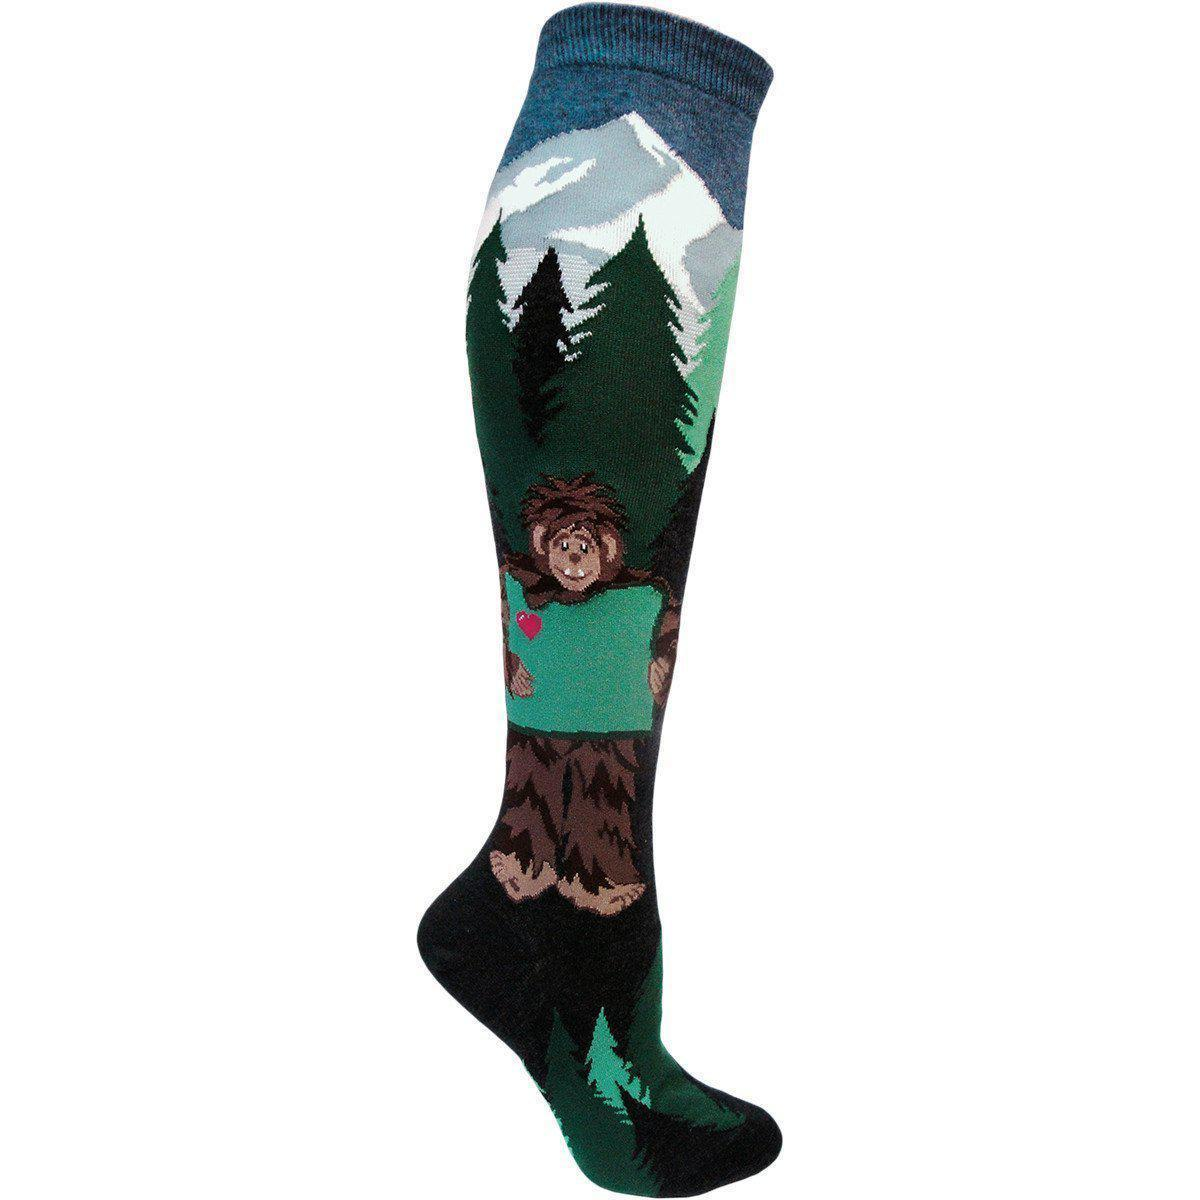 ModSock - Sasquatch Loves Oregon Knee High Socks | Women's - Knock Your Socks Off